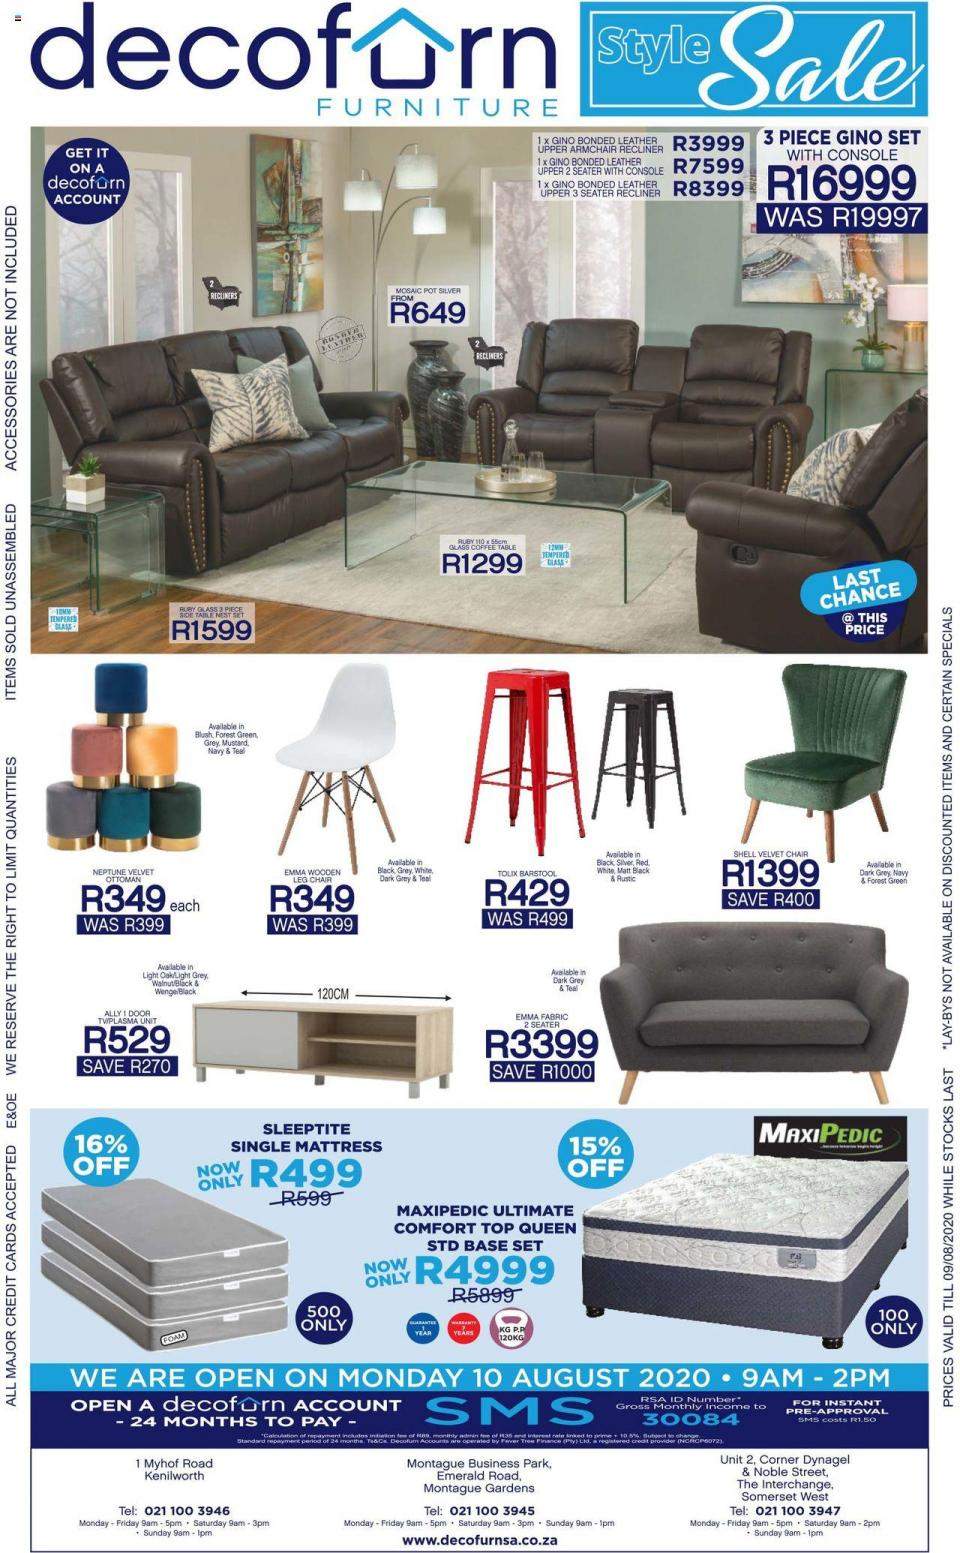 decofurn specials 29 july 2020